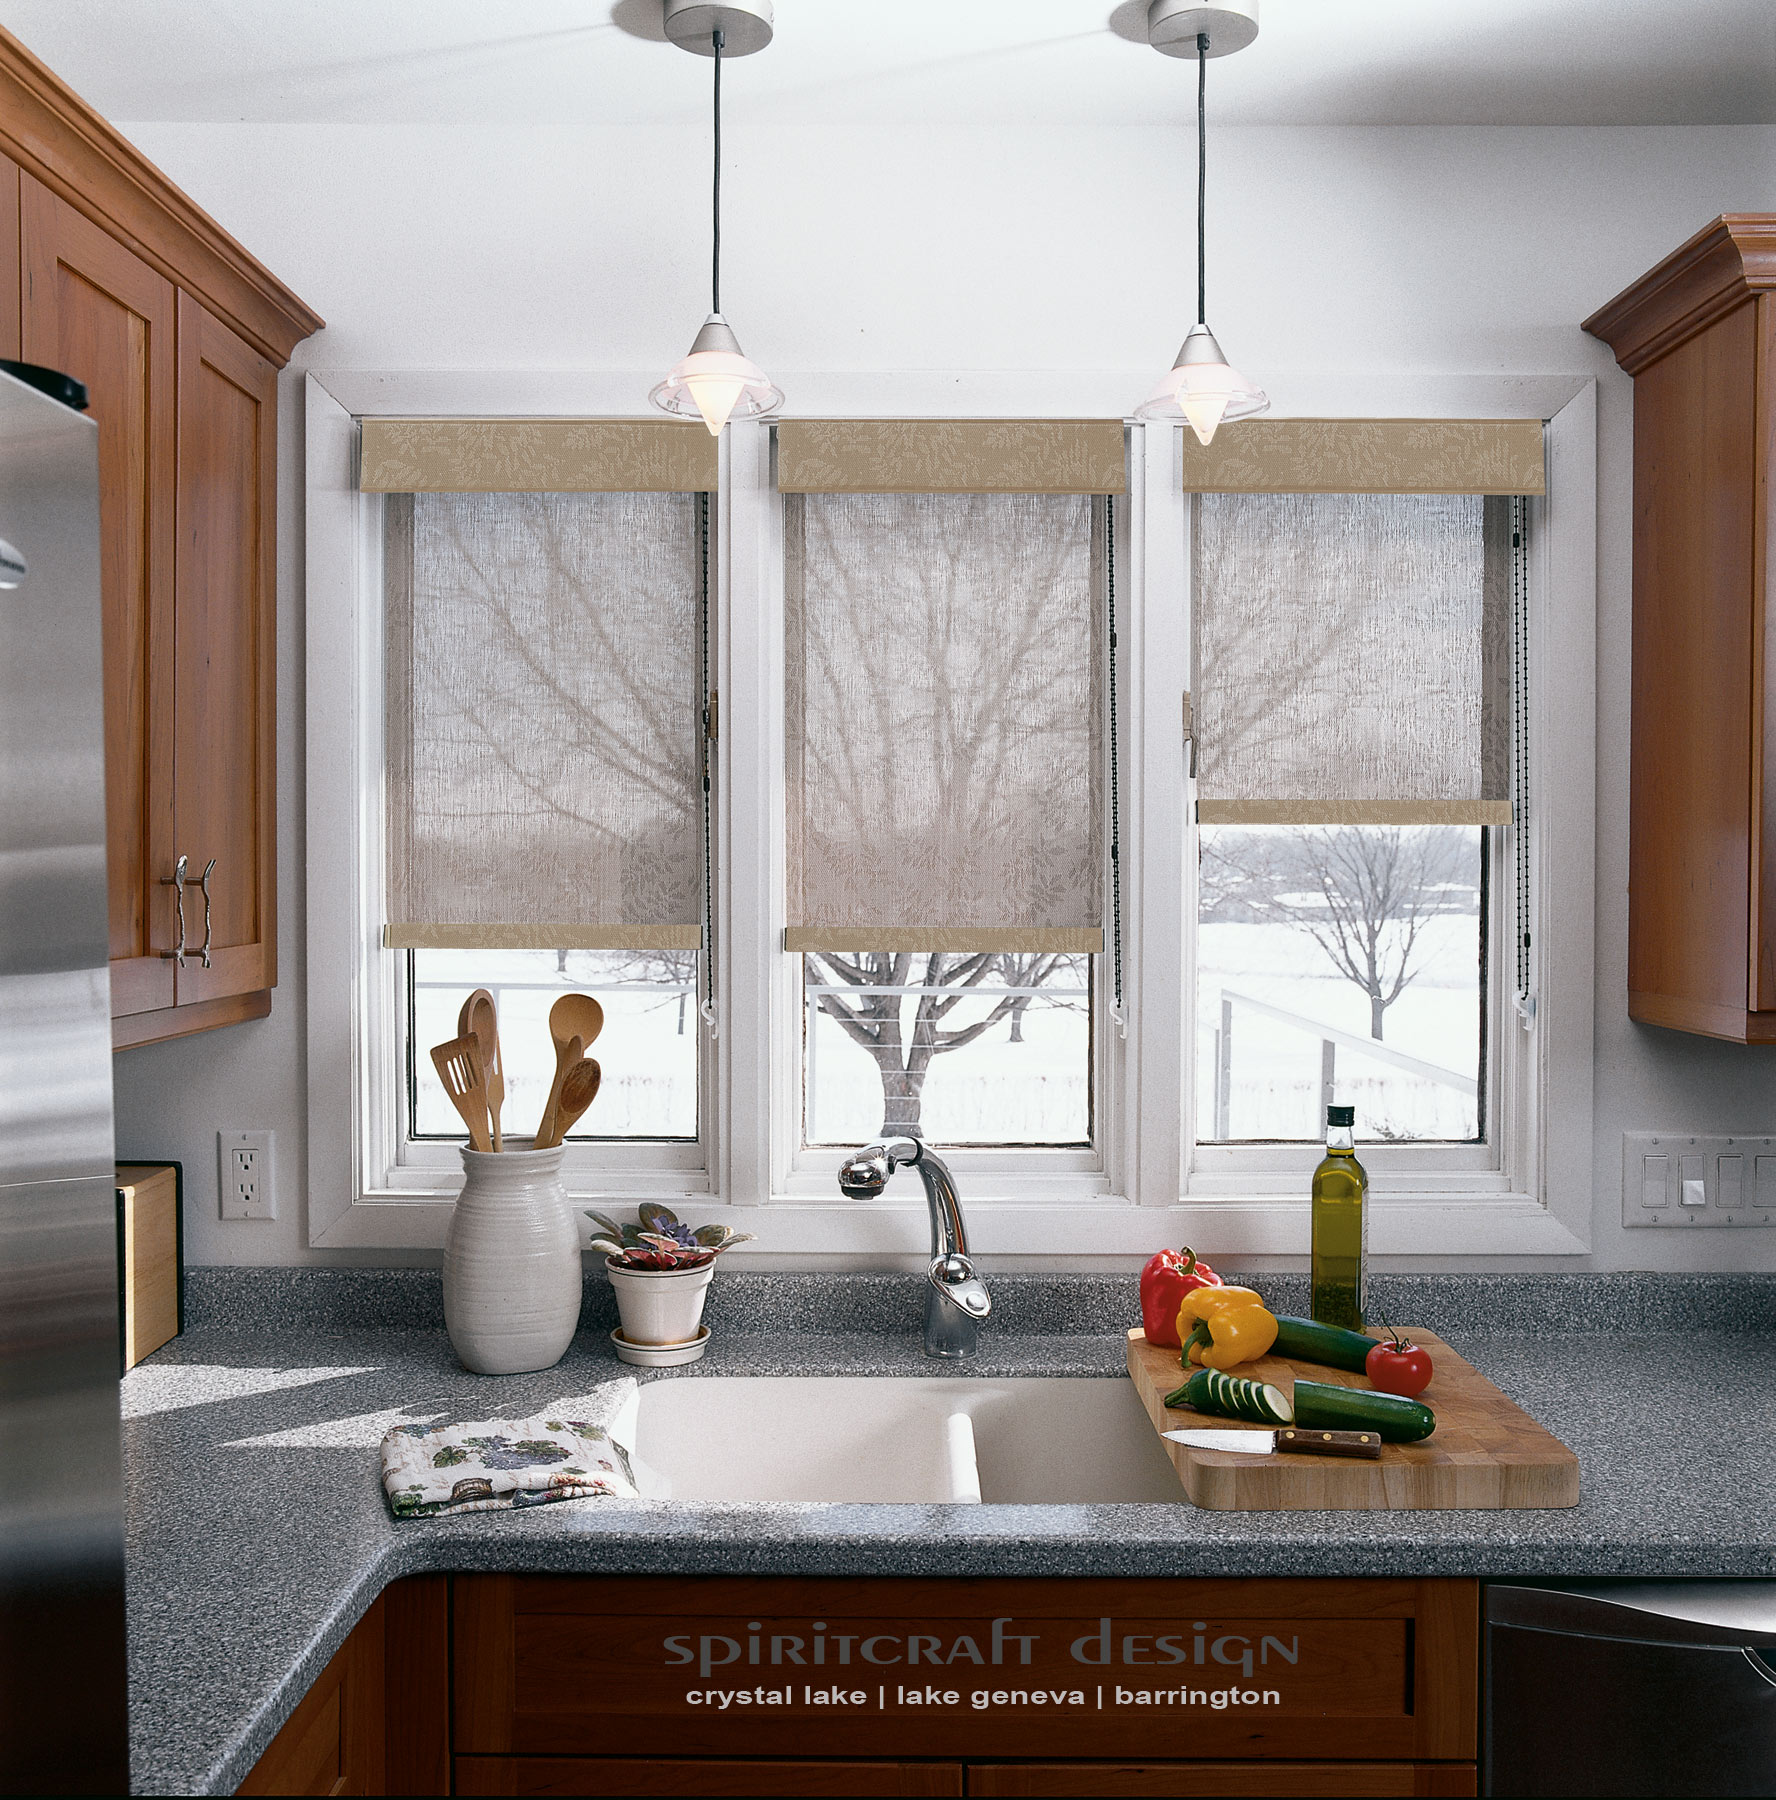 Custom Window Treatments And Kitchen Window Shades By Spiritcraft Interior  Design Of Crystal Lake And Barrington